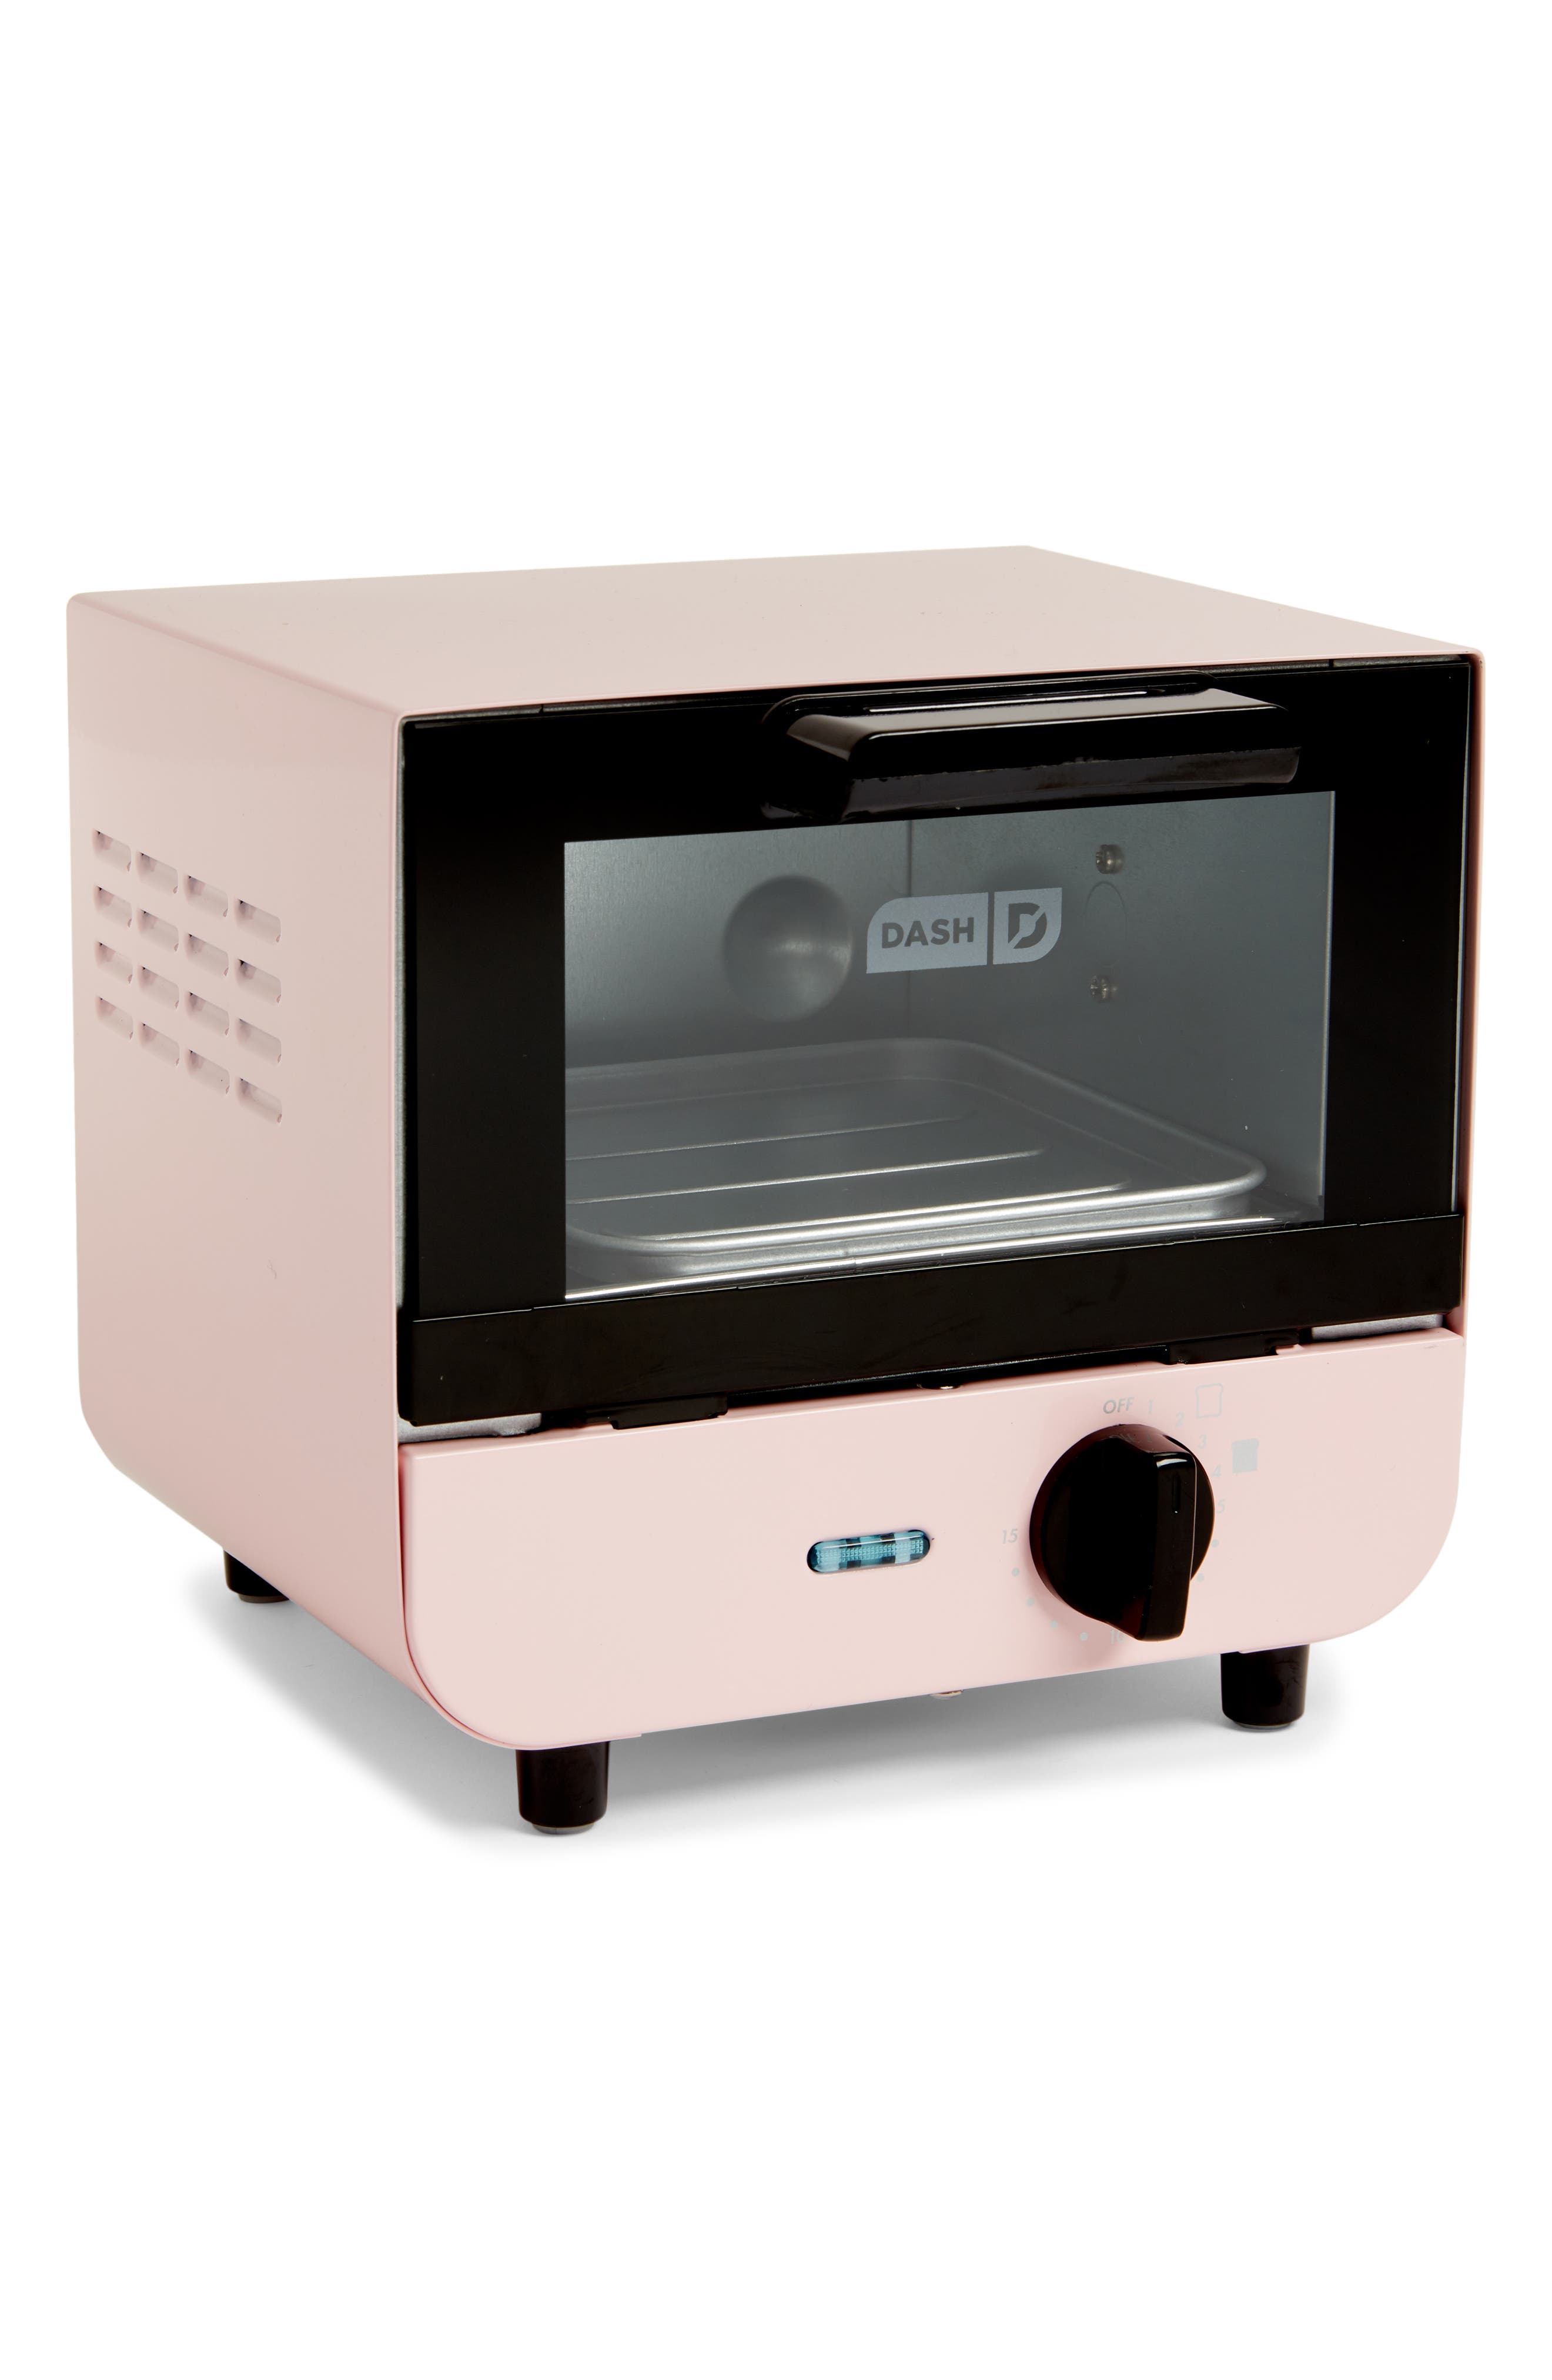 Image of DASH Mini Toaster Oven